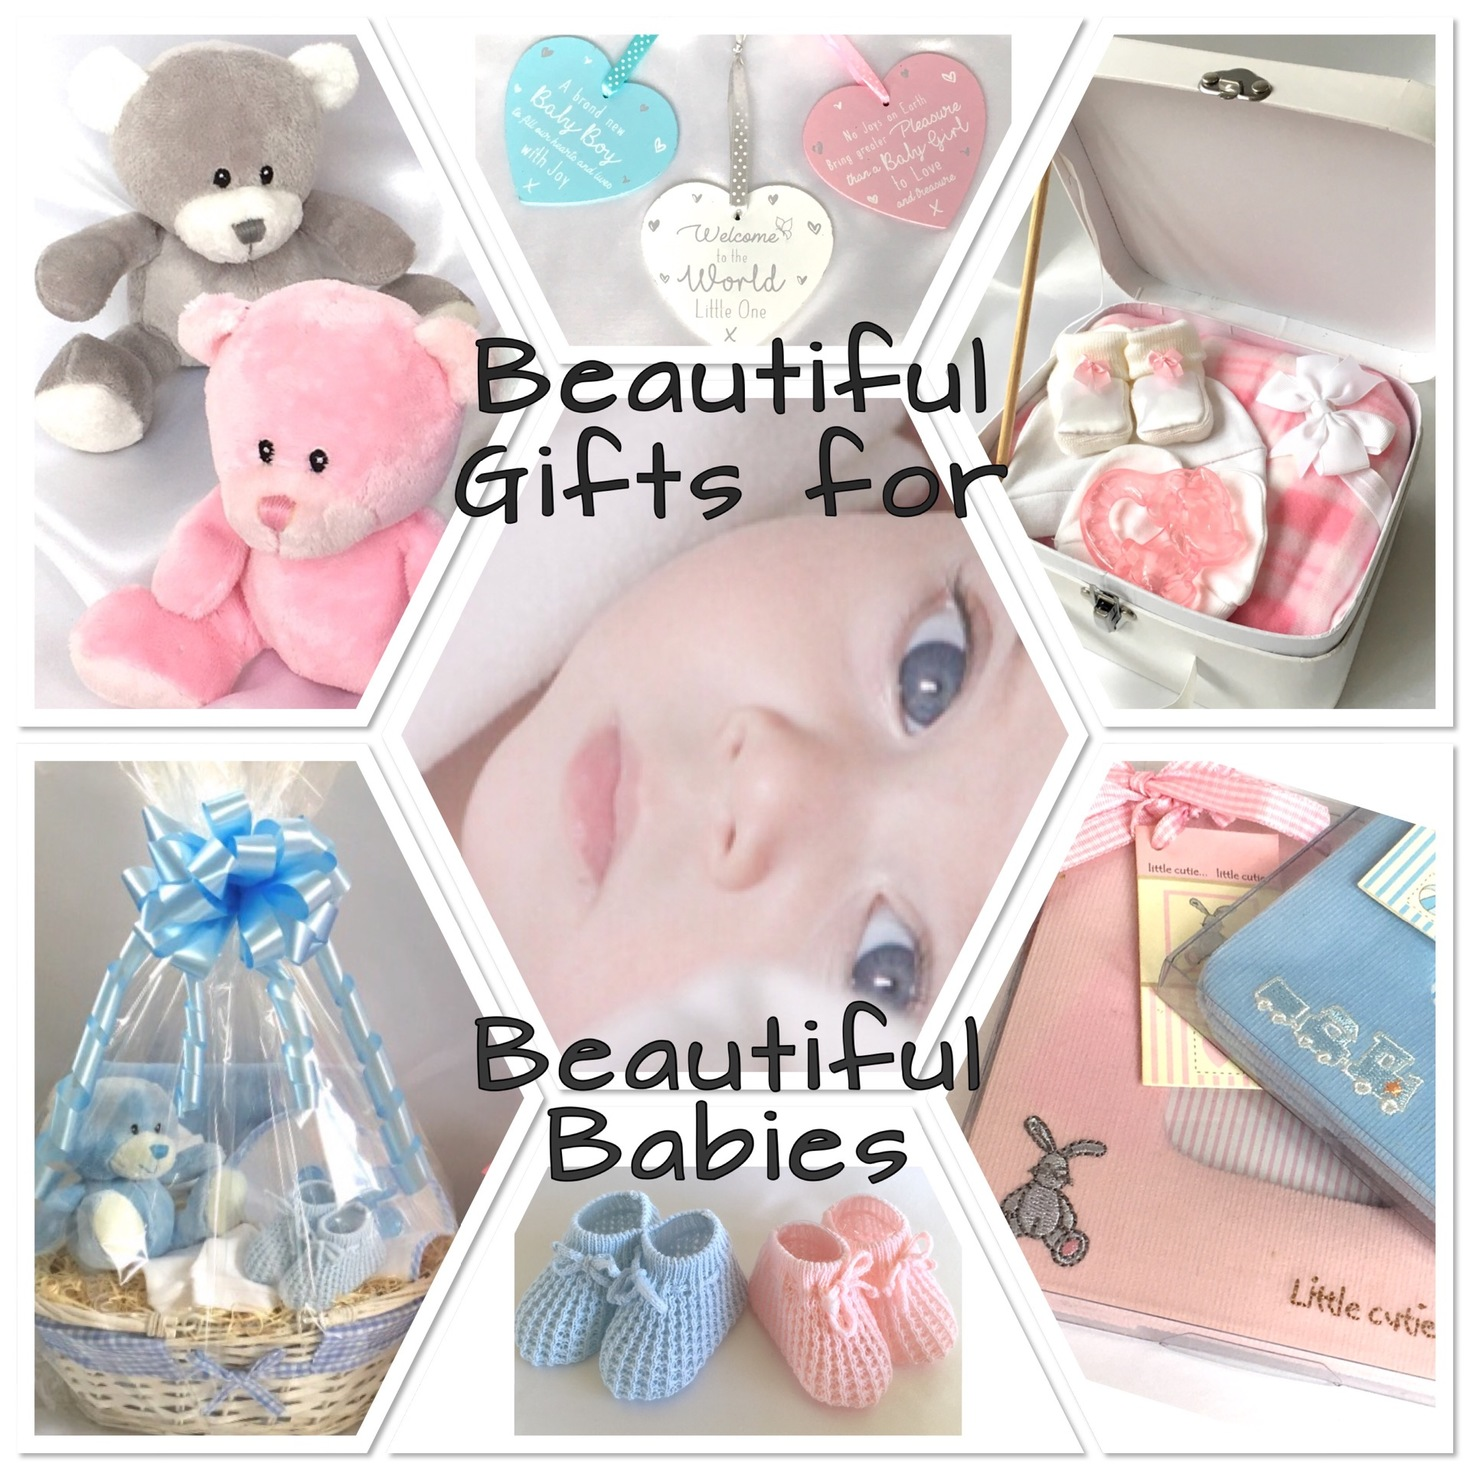 New Baby Gift Baskets teddies hampers booties Photo frmaes